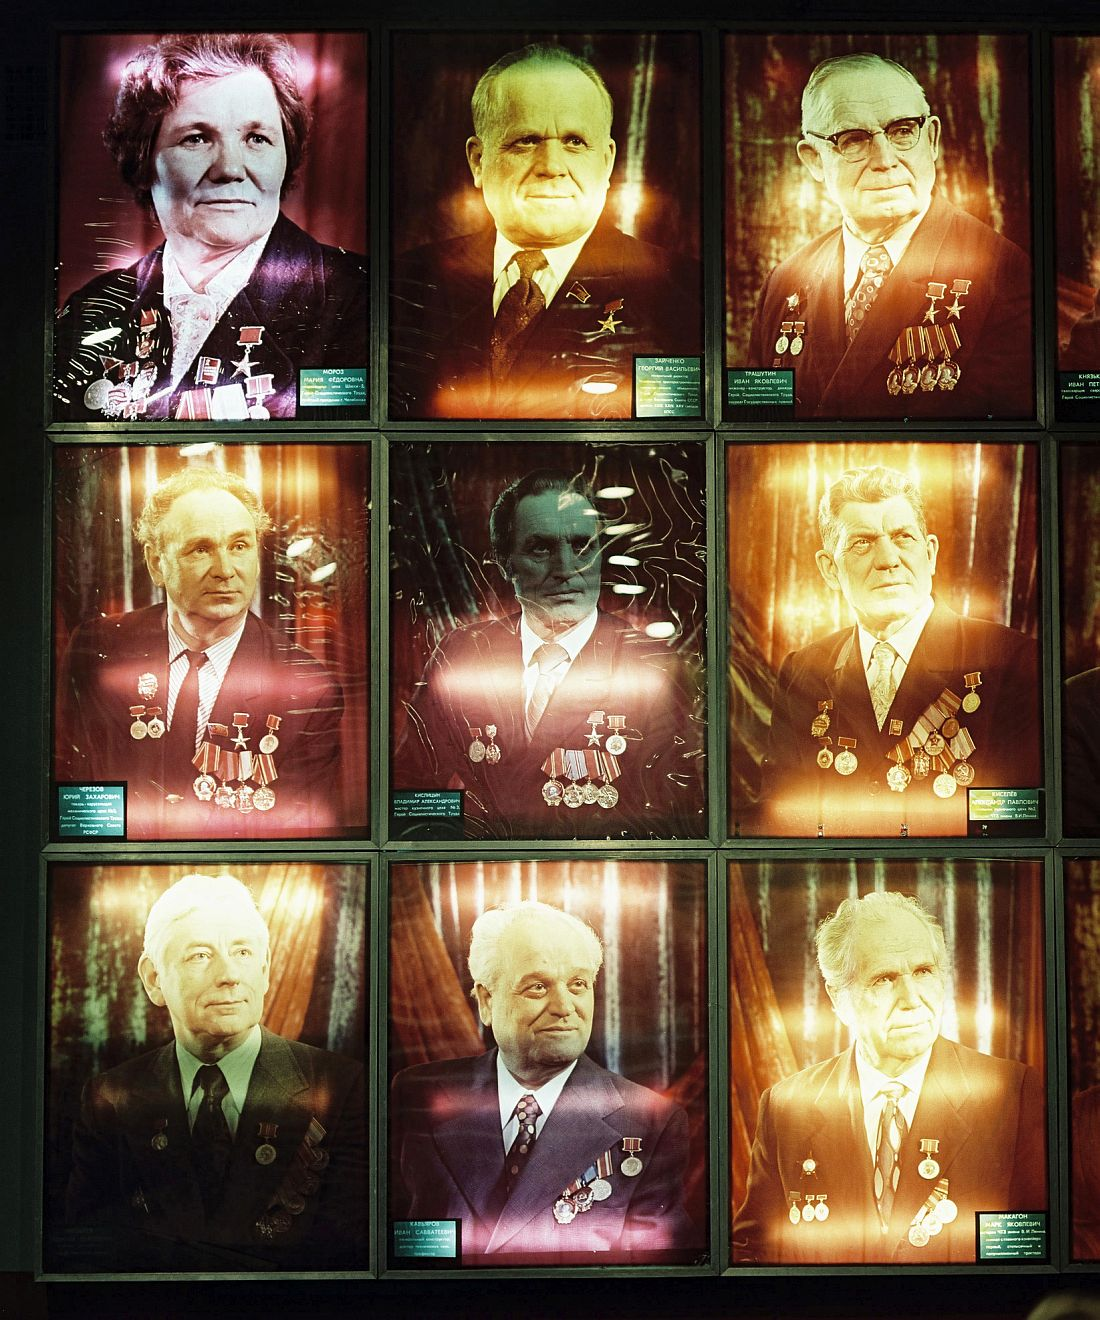 Chelyabinsk, RUSSIA, 2003 - Wall with decorated veterans in the museum of the Tractor factory where they produced tanks during WWII (The Great Patriotic War 1941 - 1945)..© ROB HORNSTRA / +31 6 14365936